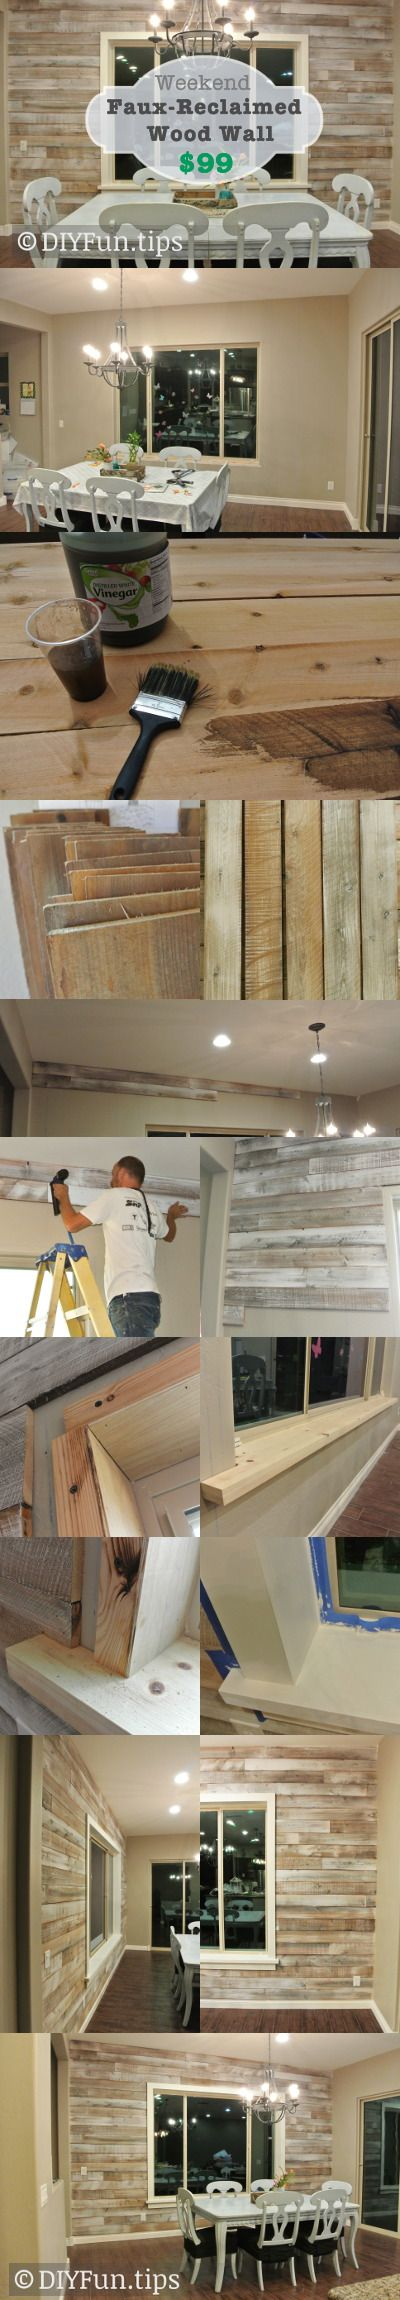 Reclaimed wood wall living room - Diy Faux Reclaimed Wood Wall Put Up A Reclaimed Wood Wall For